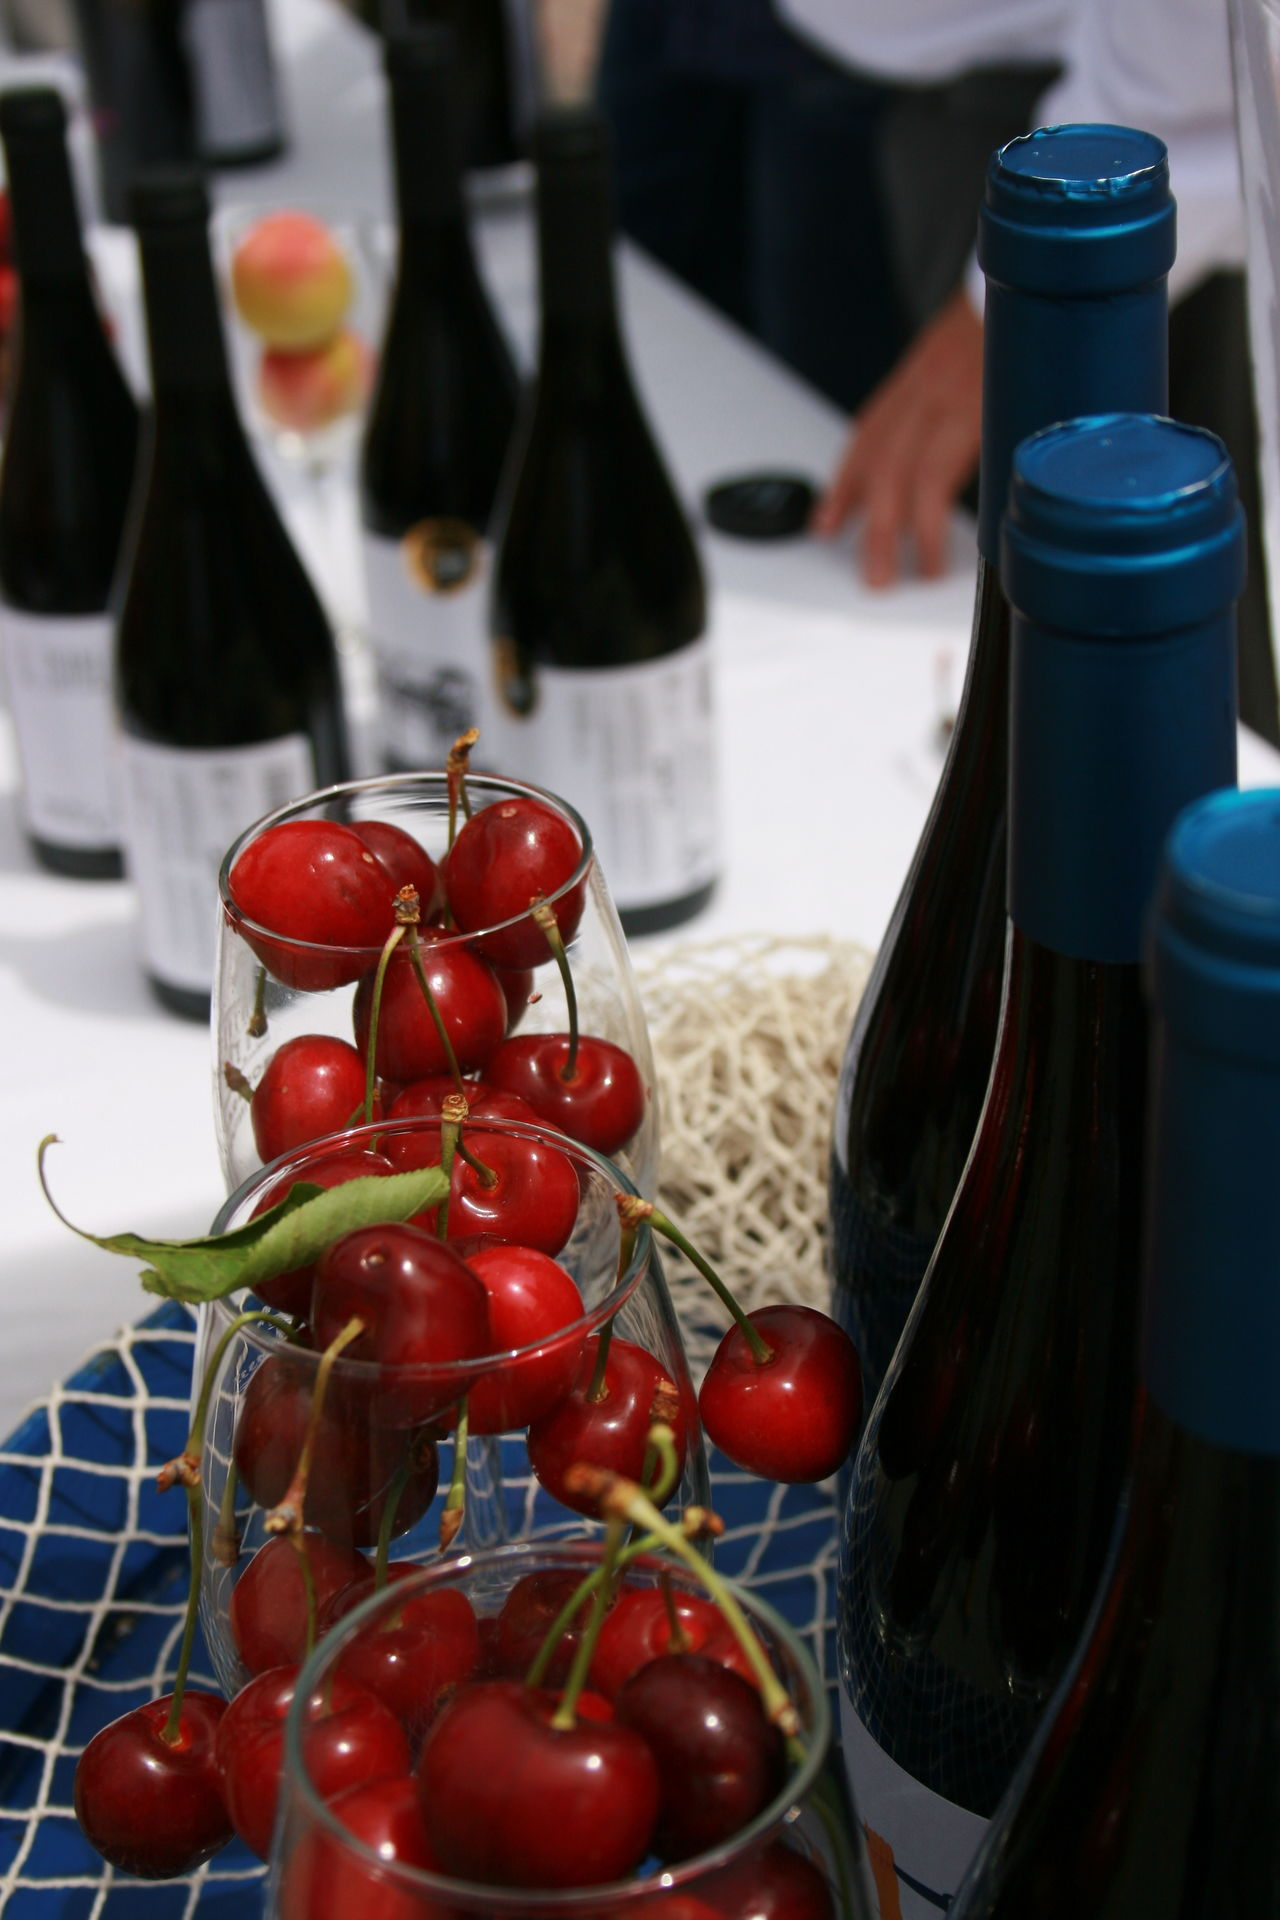 I go for cherries! Bottle Cherries Close-up Food Food And Drink Fresh Fruits Freshness Healthy Eating Red Red Cherries Spanish Wine Table Valencia, Spain Wine Wine Bottles Wineglass